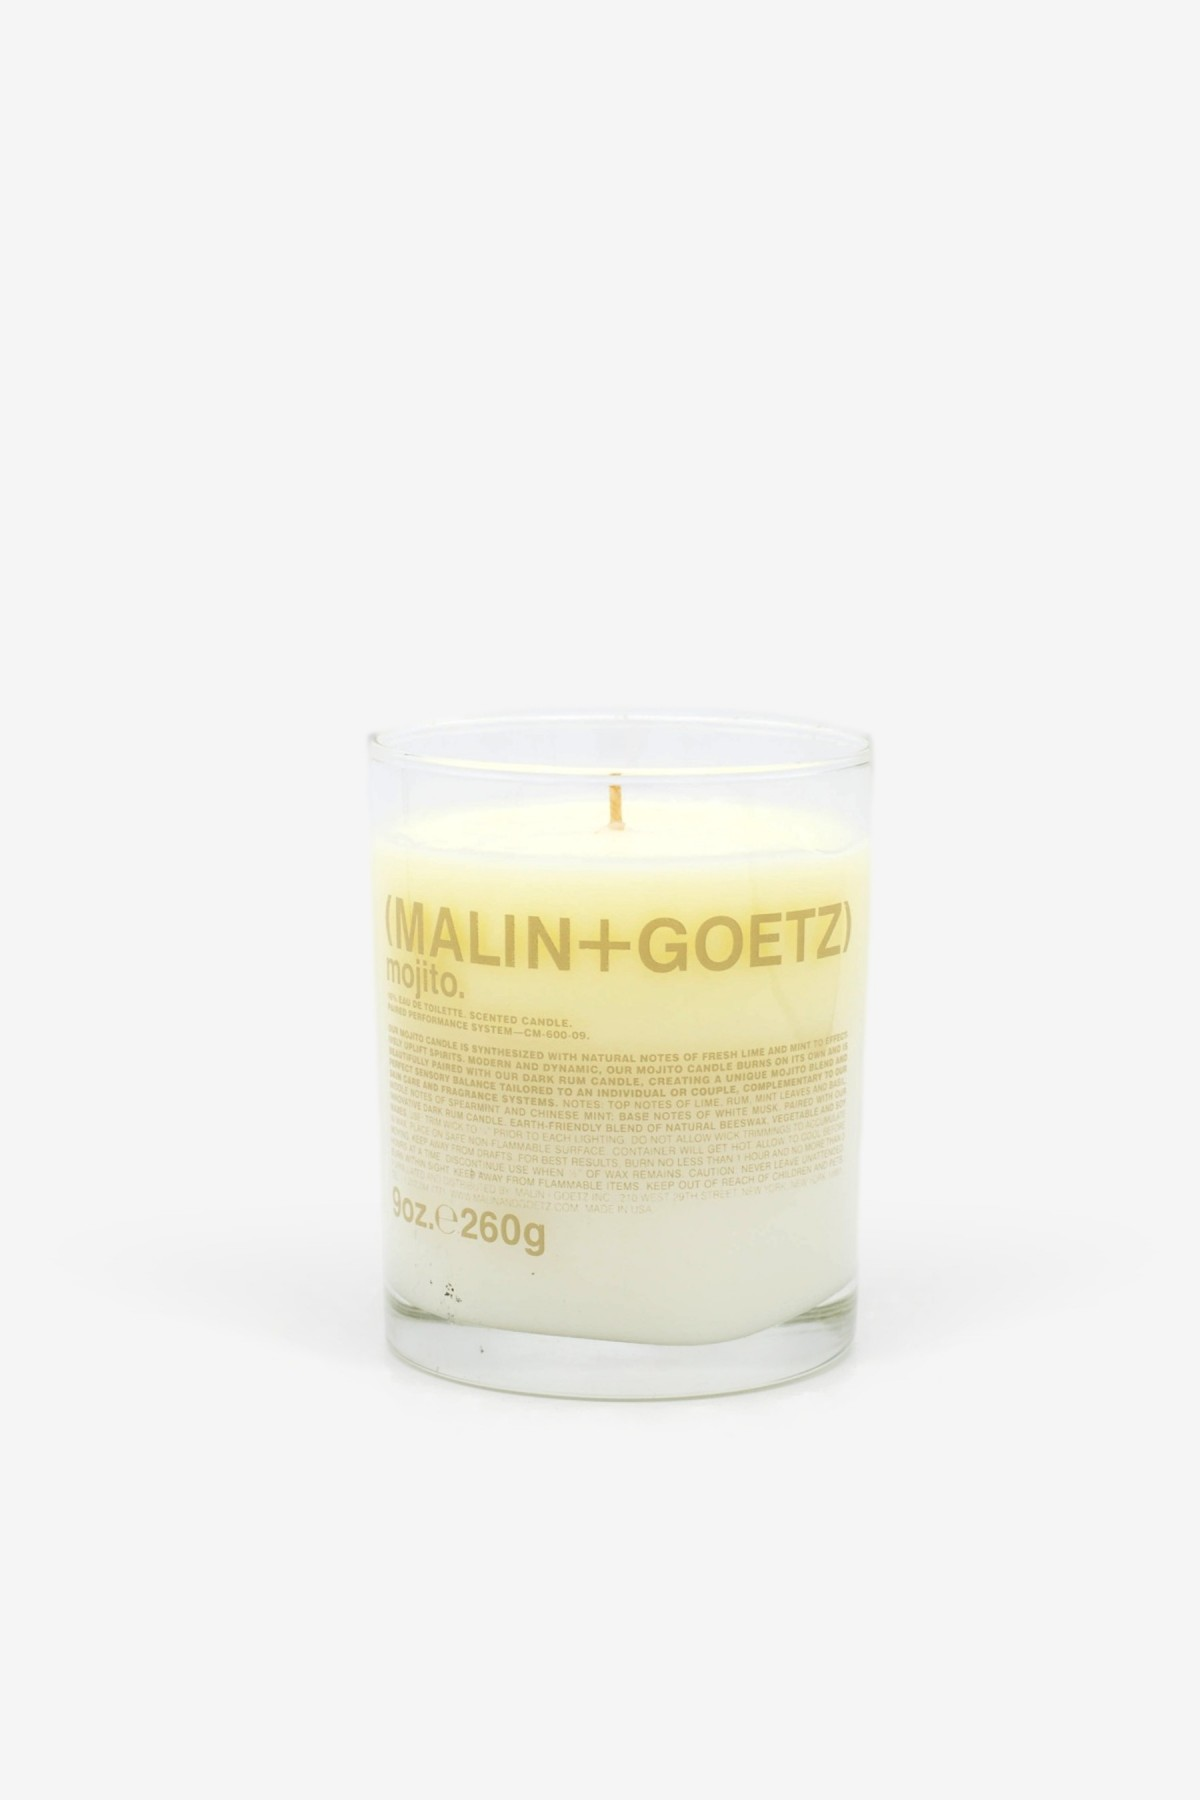 Malin+Goetz Mojito Candle 260gr in